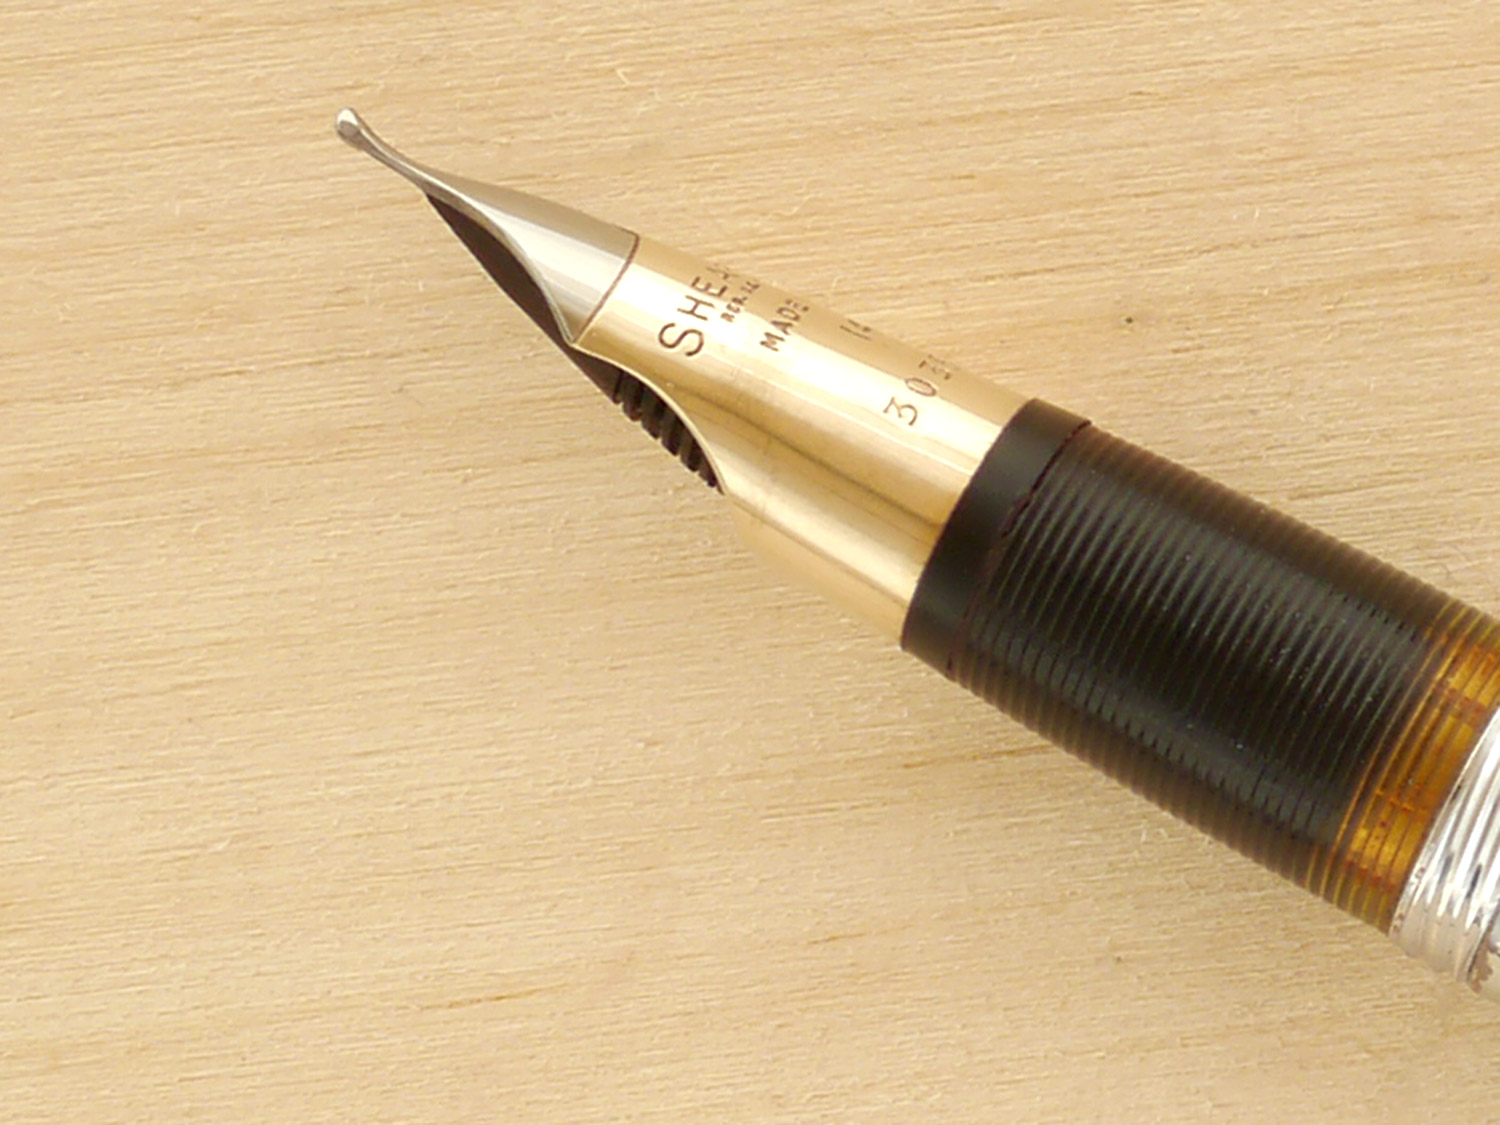 Sheaffer Touchdown Valiant, B, nib profile showing excellent geometry and alignment